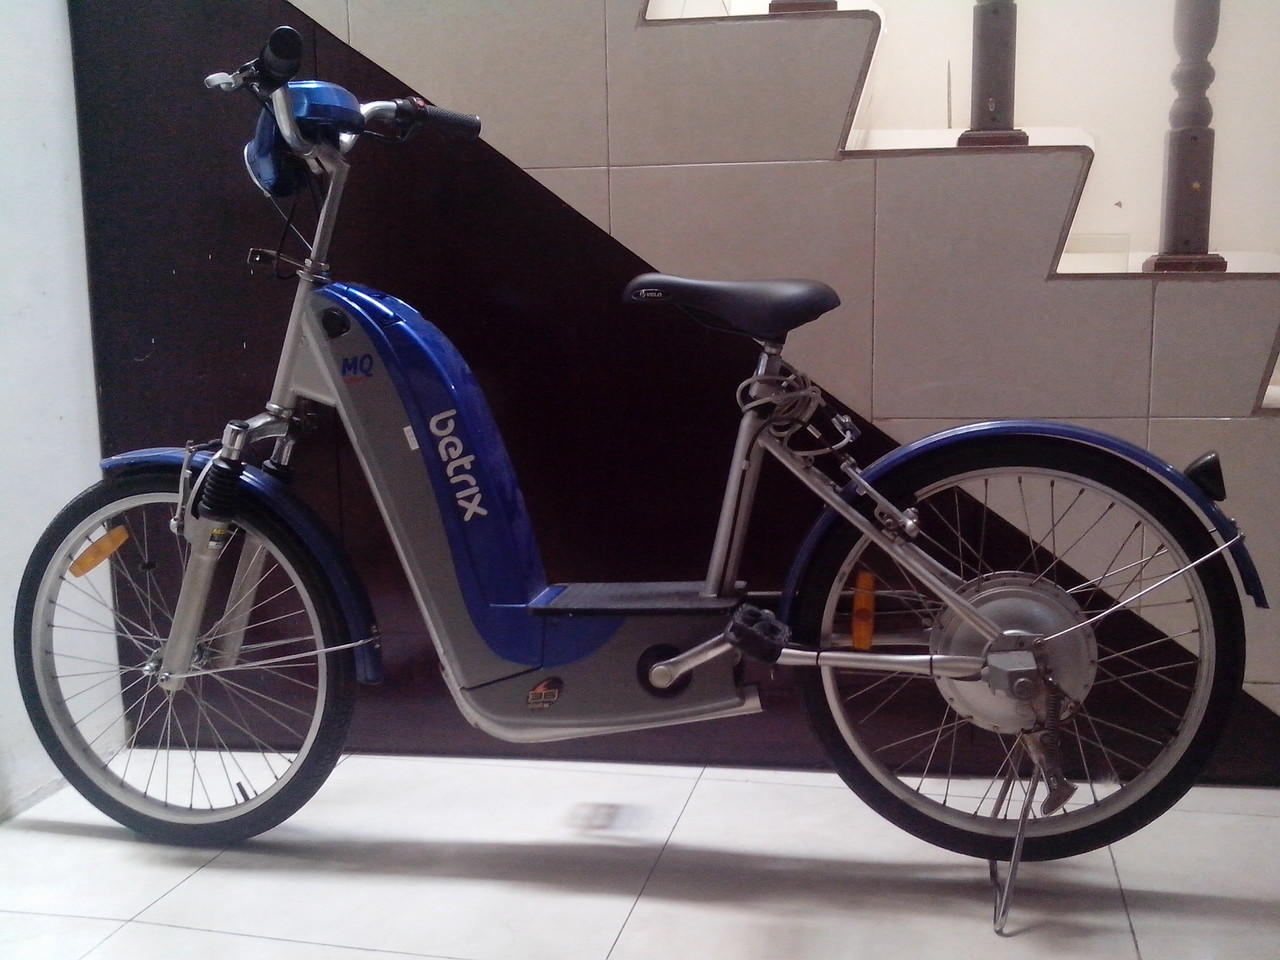 serba-serbi Electric Bike (Show your E-Bike)